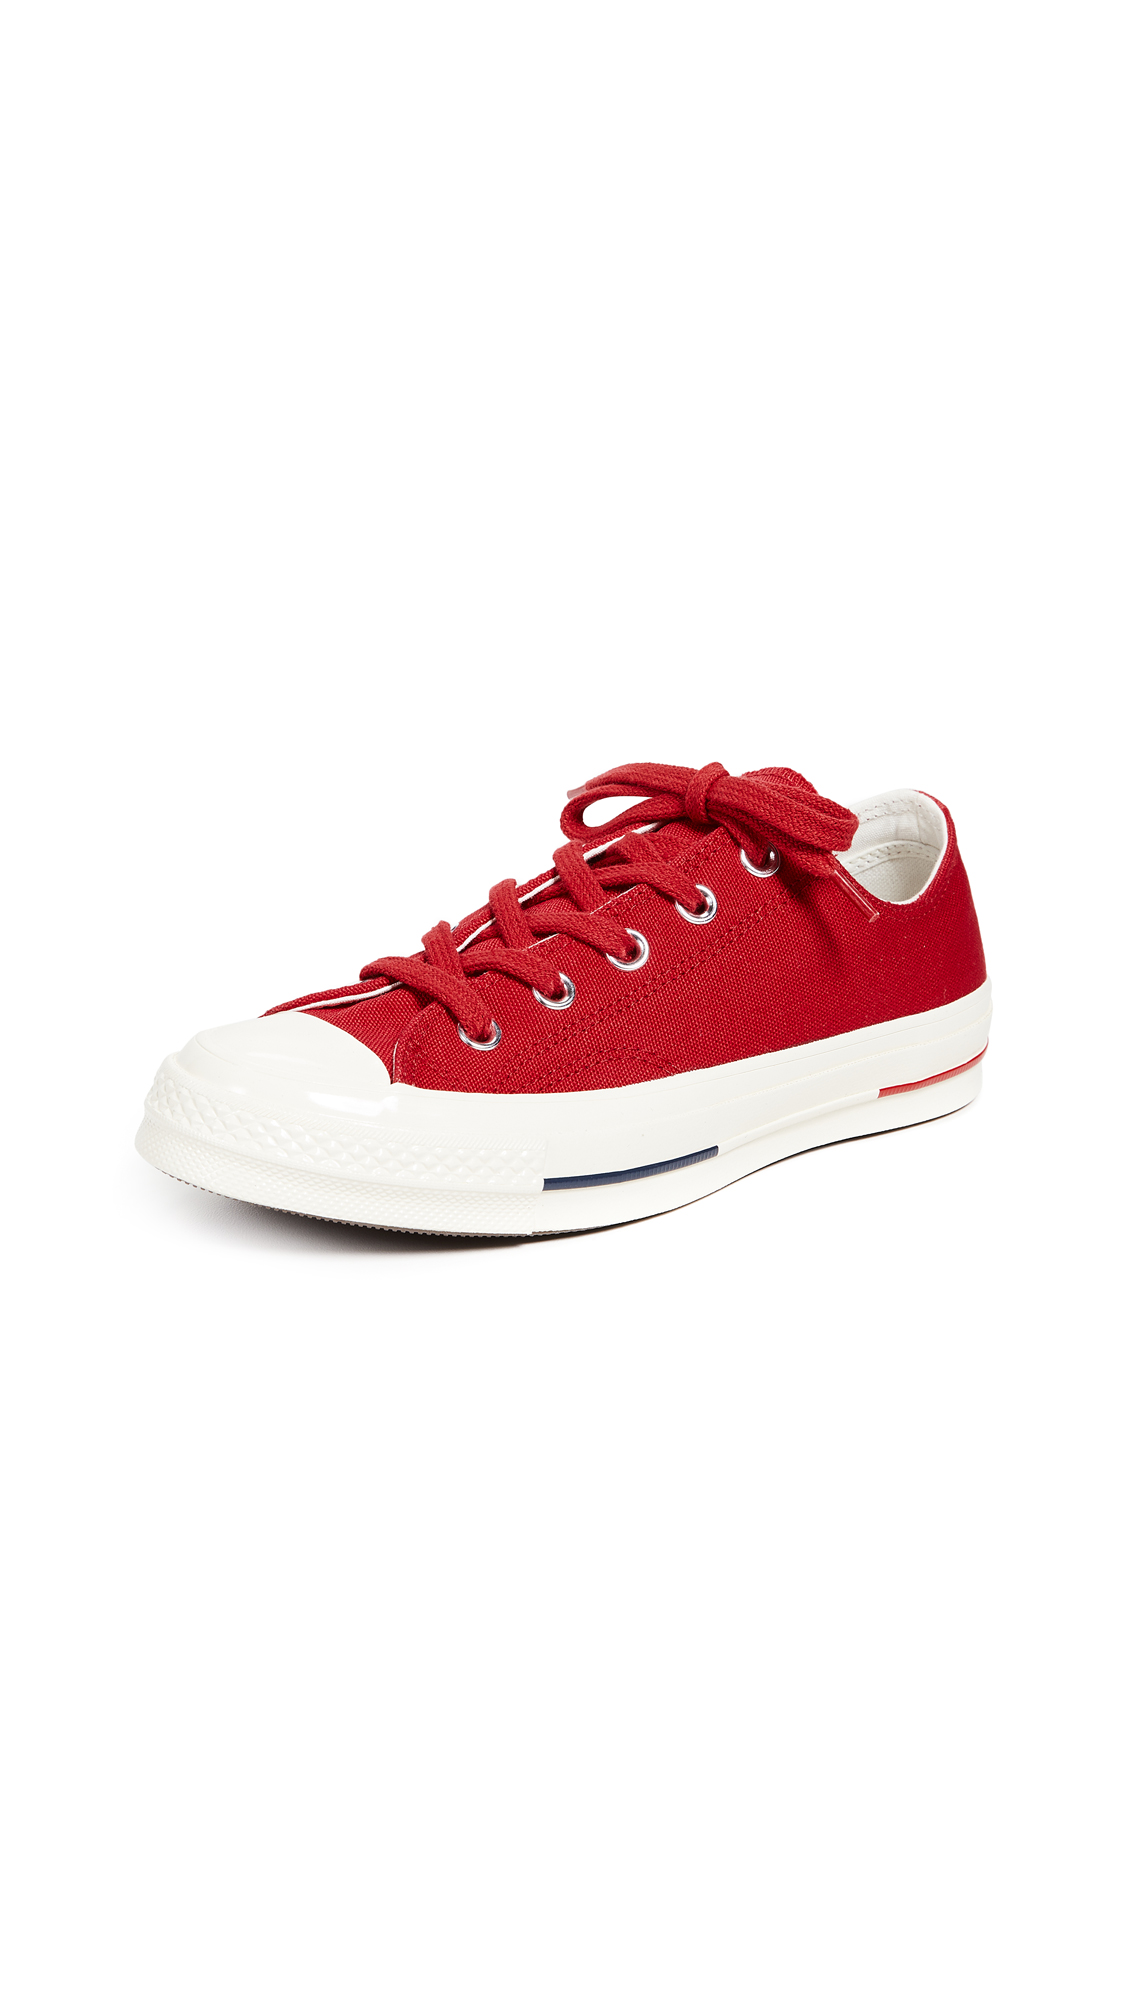 Photo of Converse Chuck Taylor All Star 70 Ox Sneakers online shoes sales